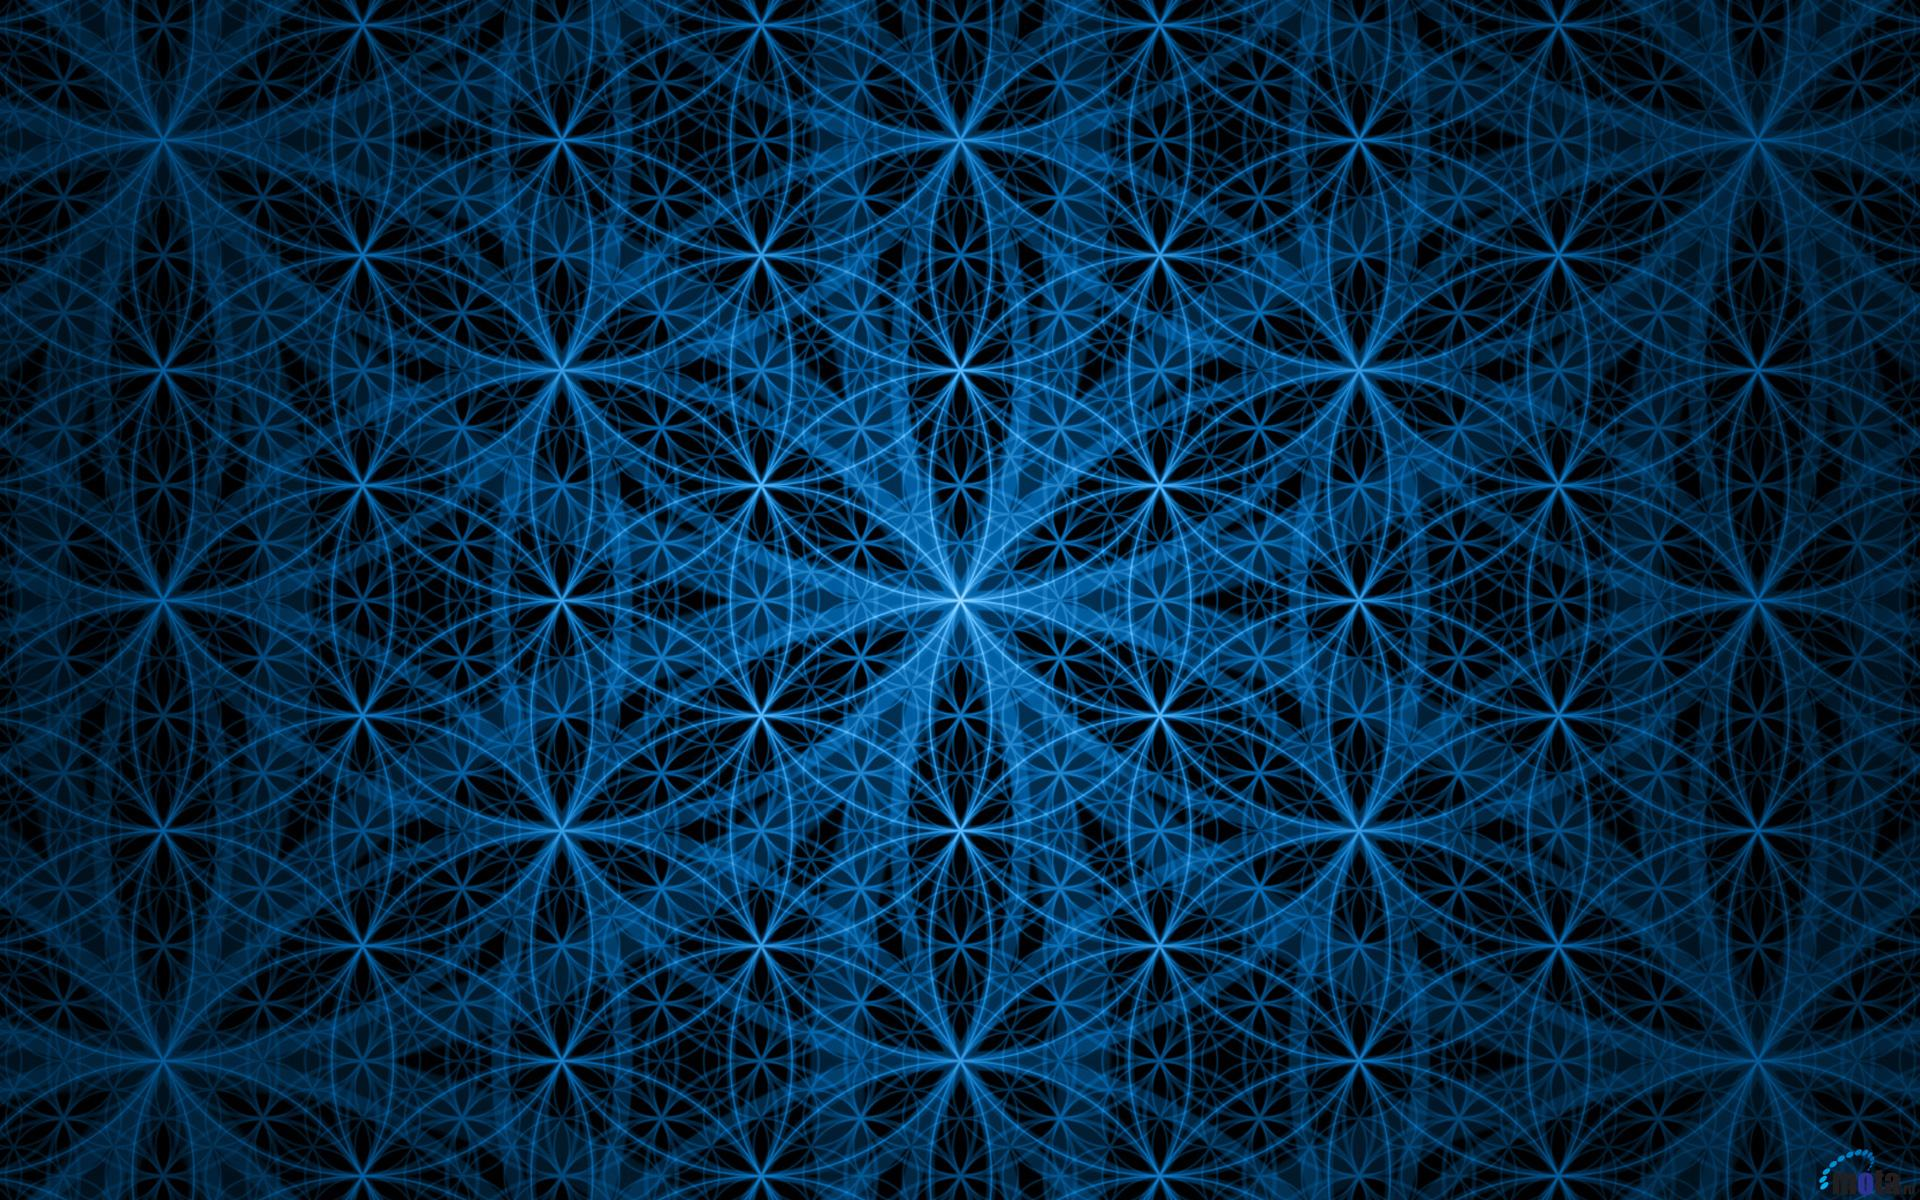 Wallpaper download life - Flower Of Life Blue